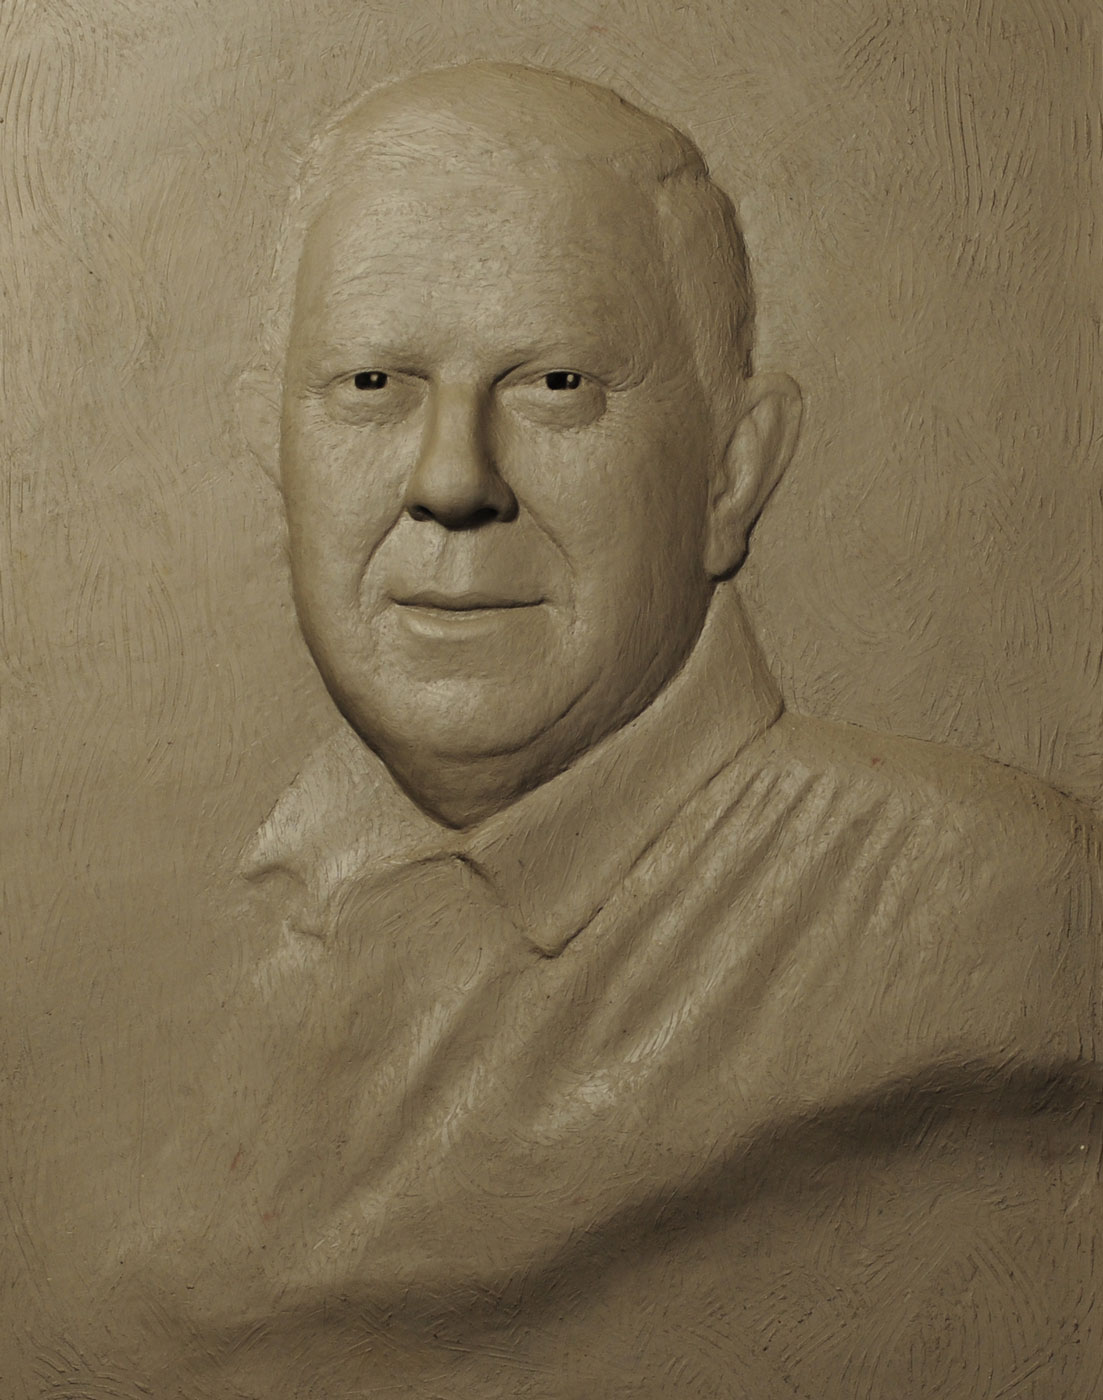 Clay relief portrait bust sculpture of the philanthropist Dr Yusuf Hamied by the artist Anthony Smith